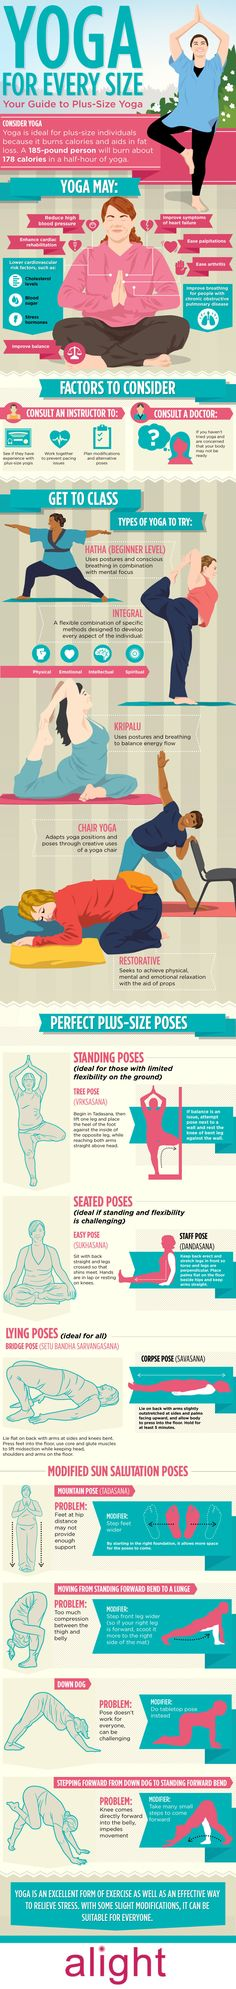 Yoga for Every Size- Plus Size ladies, this is an AMAZING help for you if you are looking to start yoga. Modification & moderation are key!